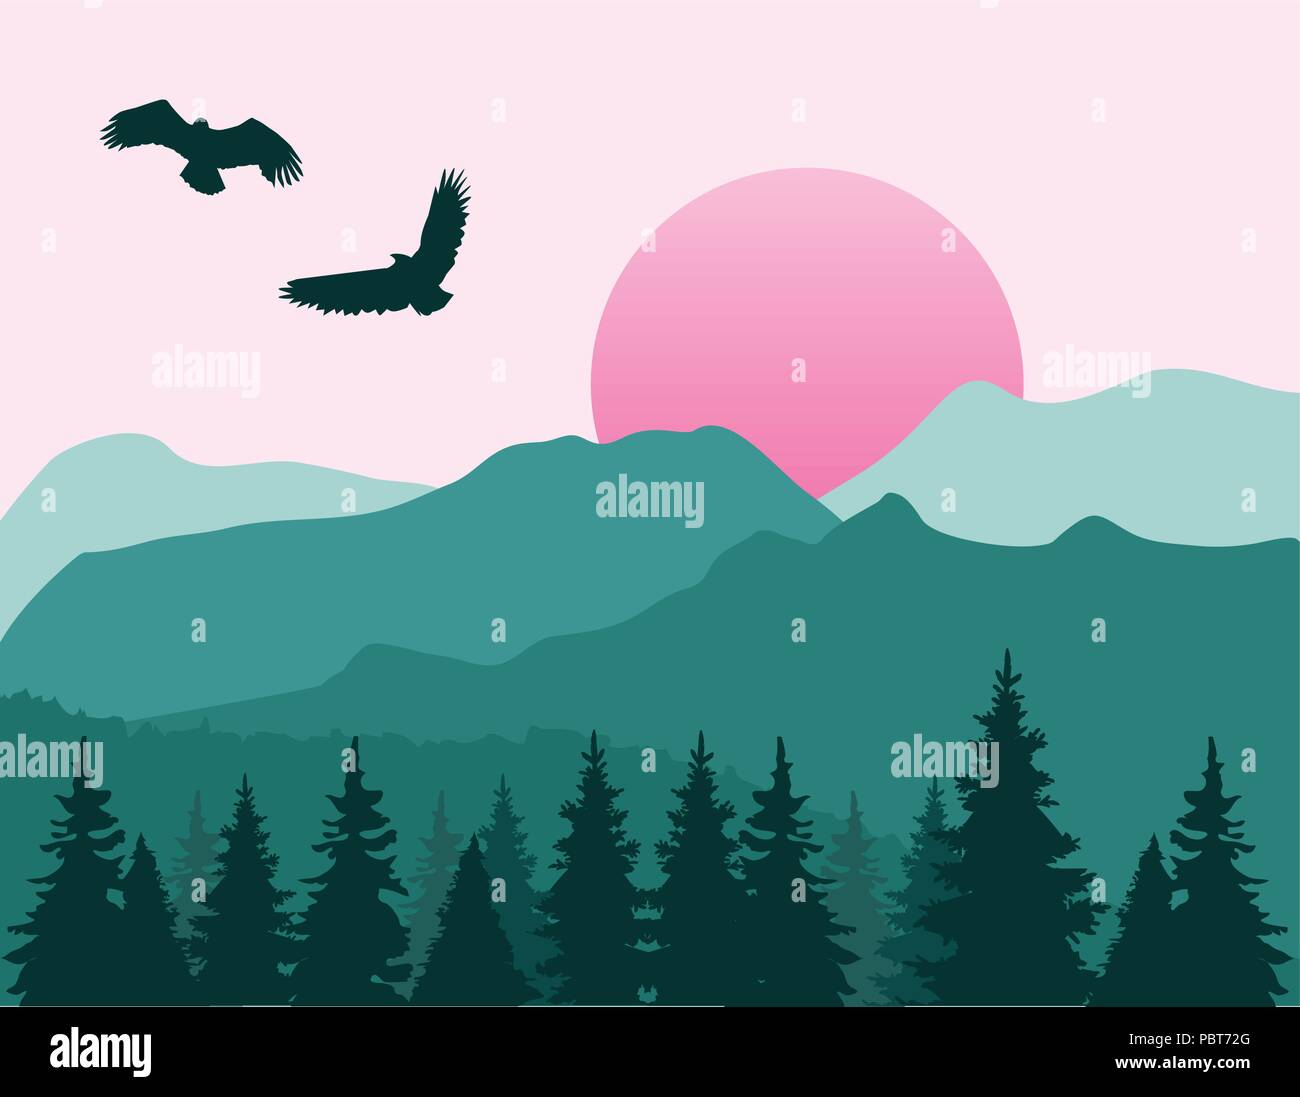 Vector Illustration Of Mountain Landscape Flat Nature Design Stock Vector Image Art Alamy,Pink Baby Shower Nail Designs